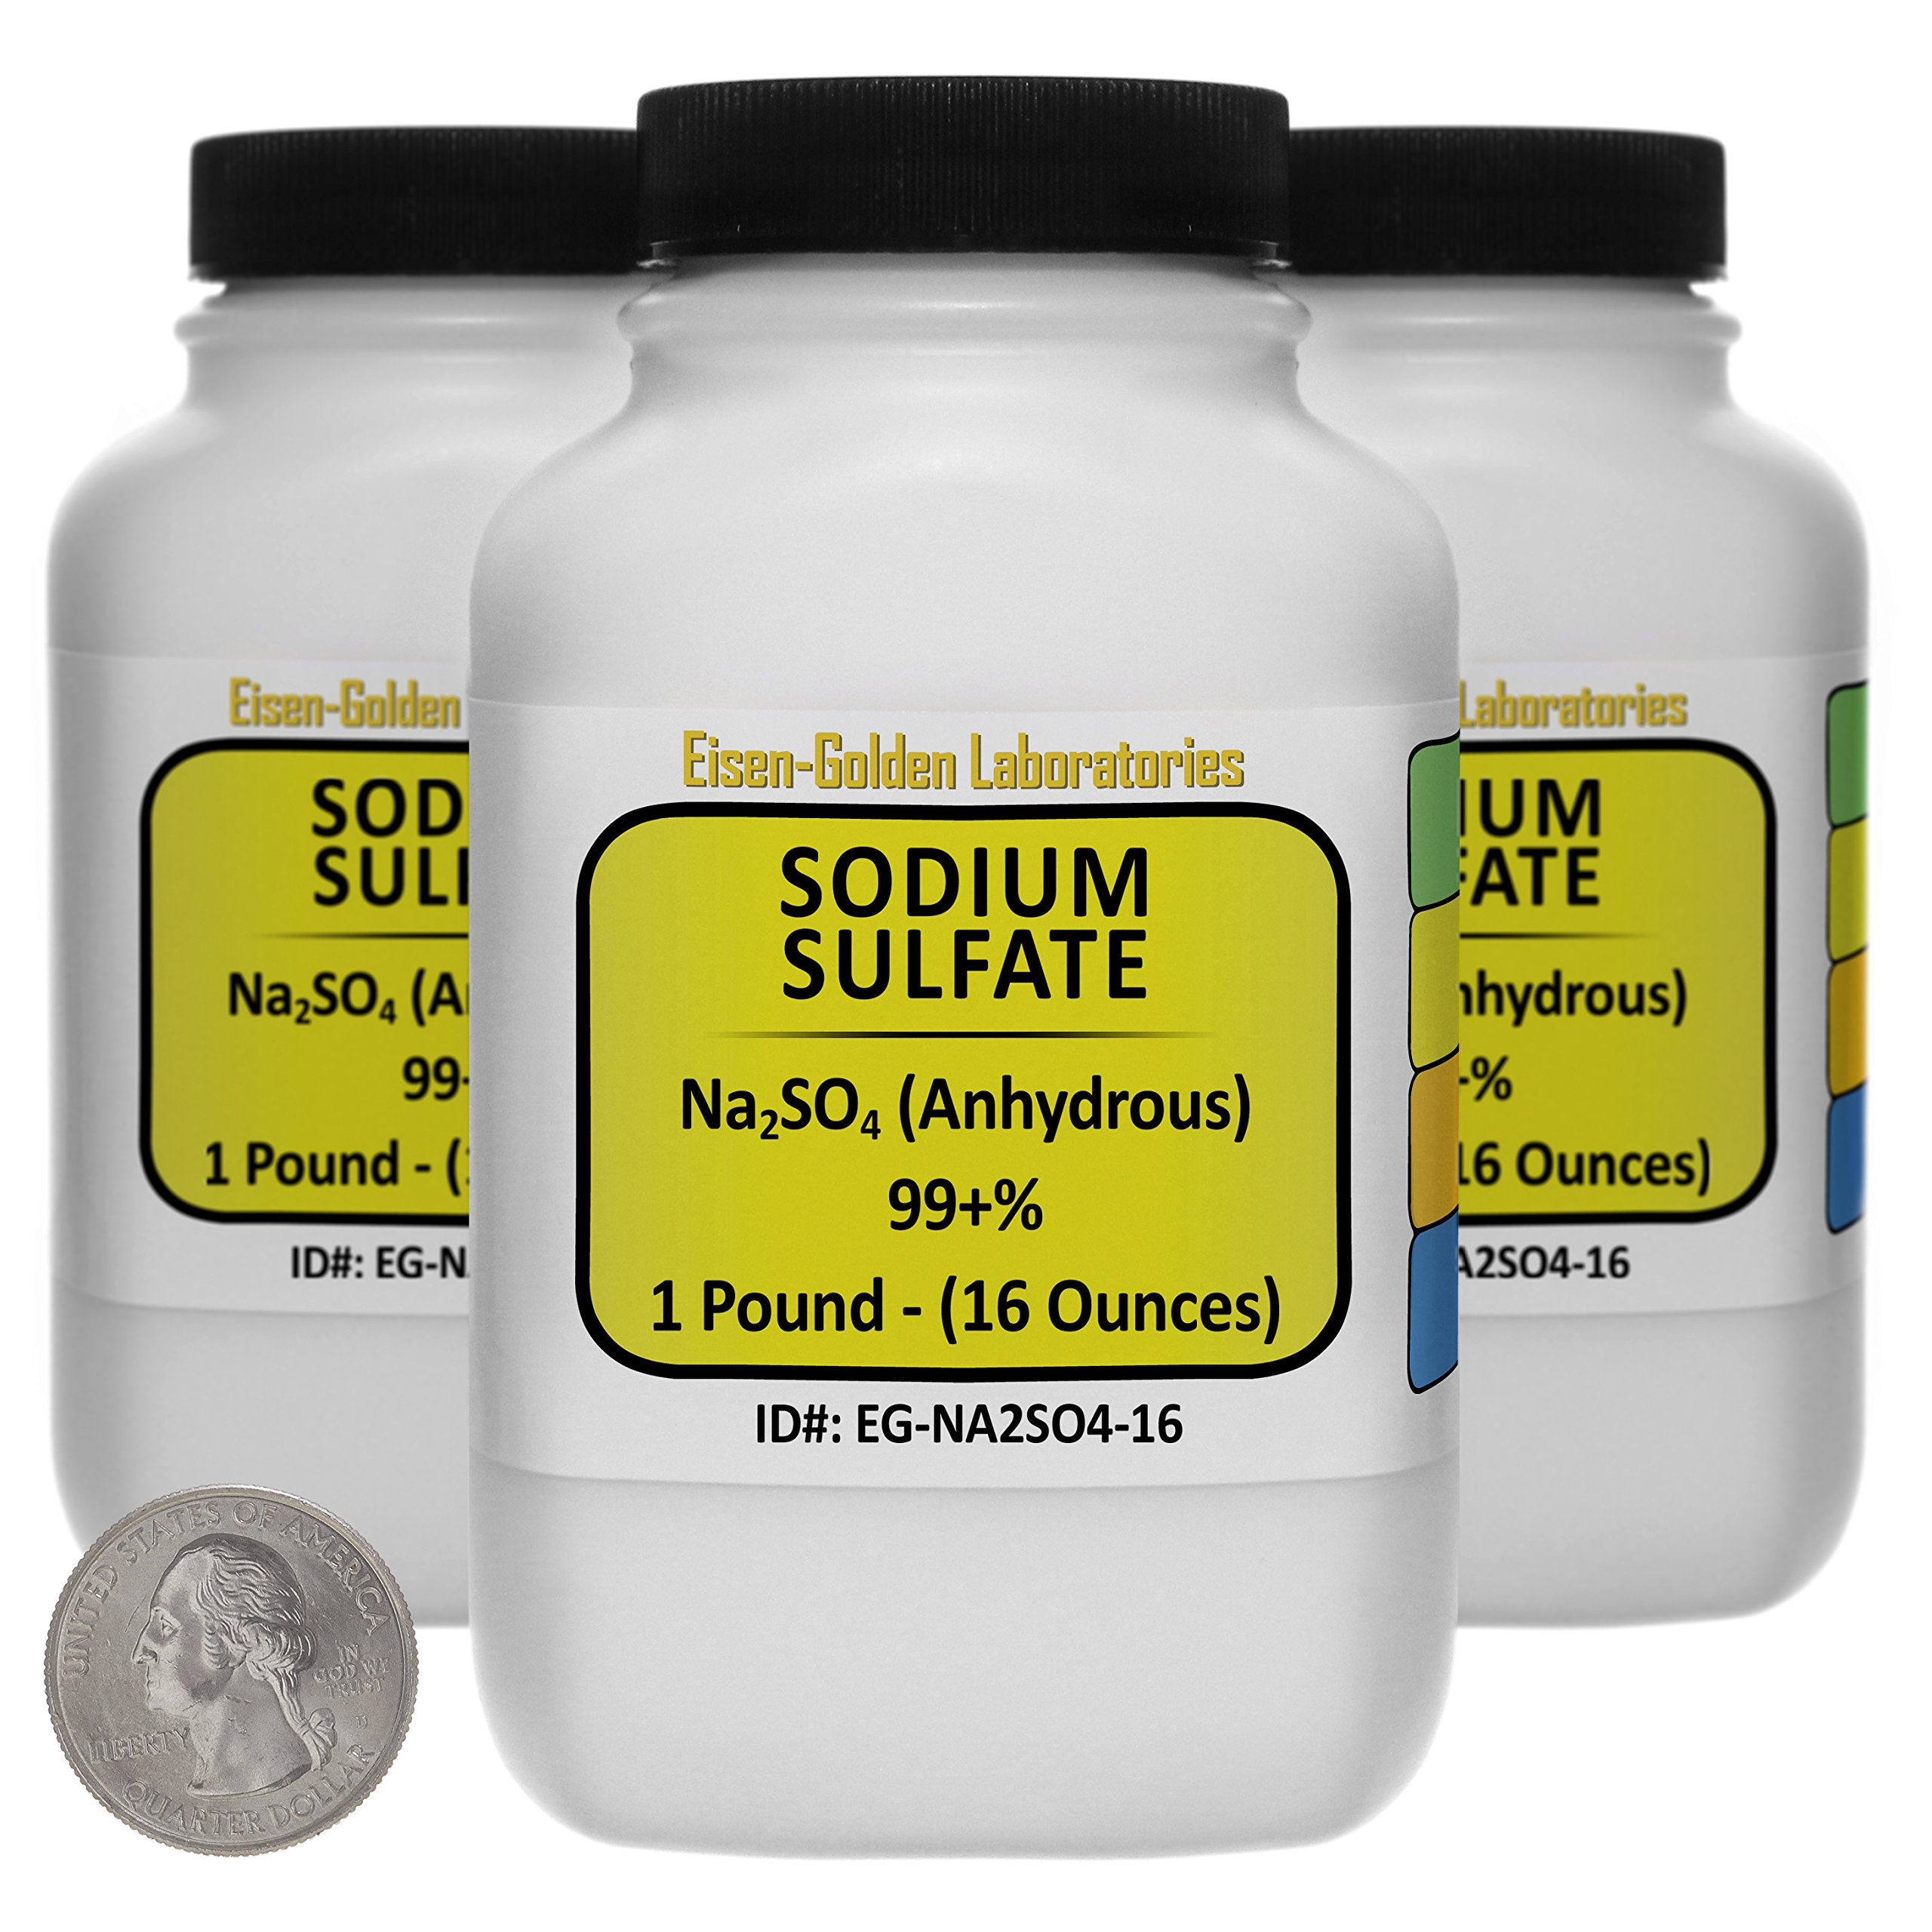 Sodium Sulfate [Na2SO4] 99+% ACS Grade Powder 3 Lb in Three Space-Saver Bottles USA